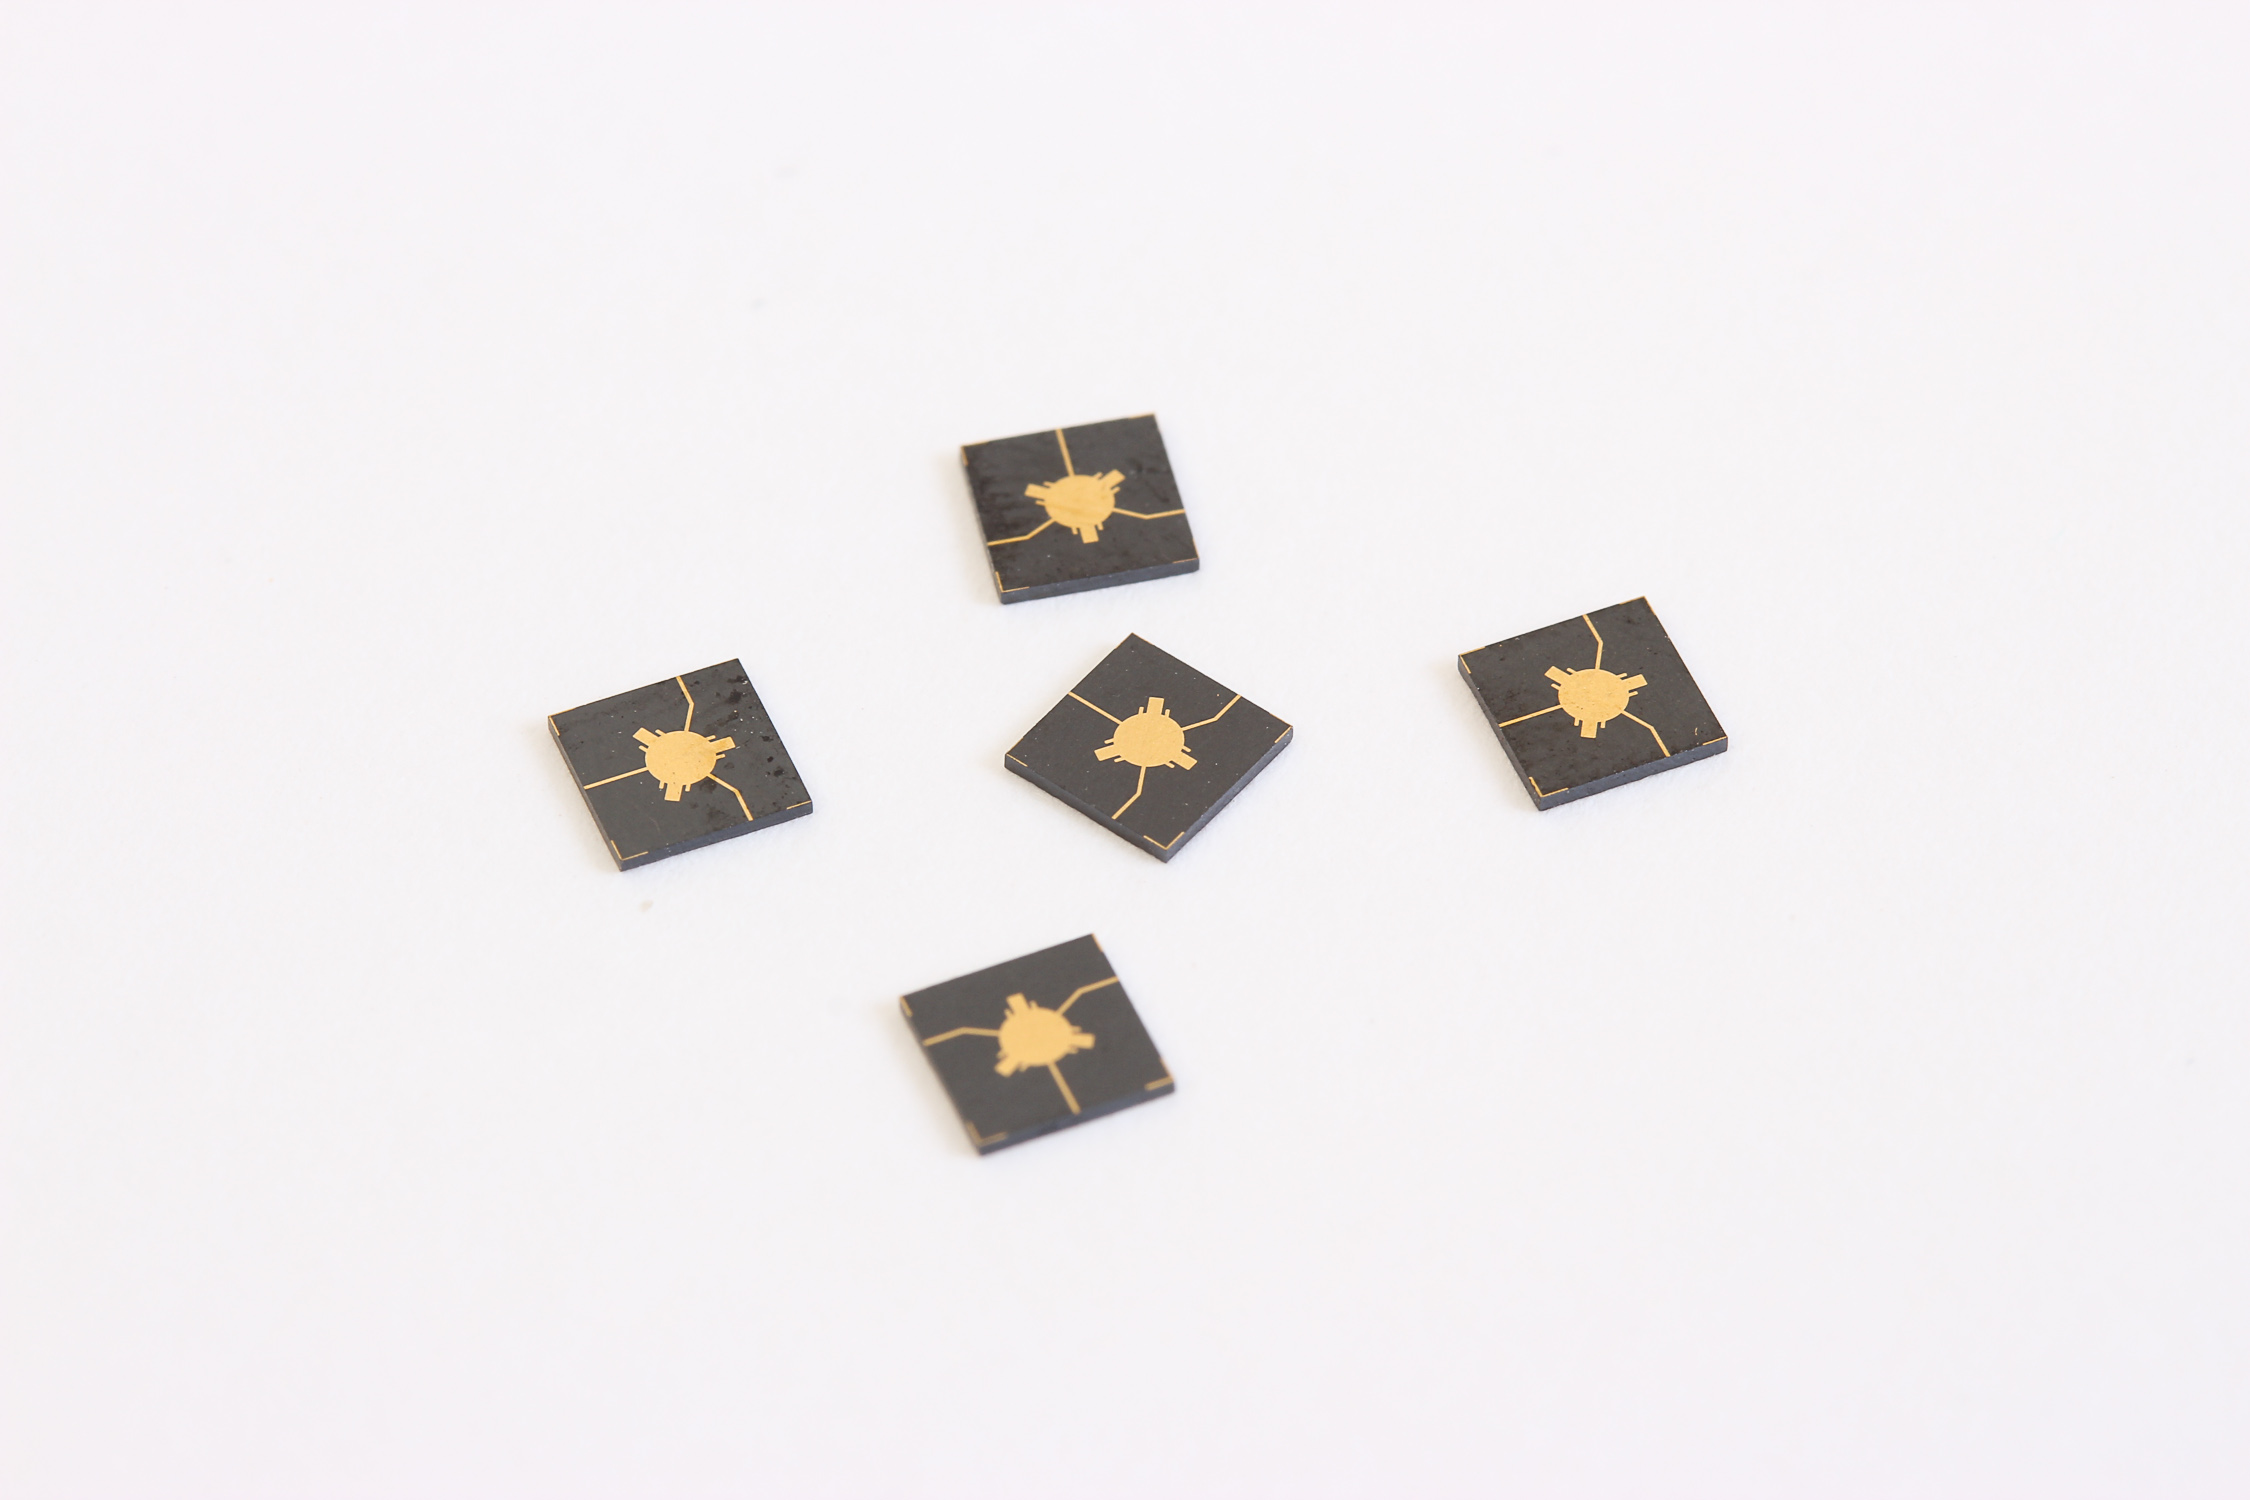 Metamagnetics' Self-Biased Ferrite Circulators